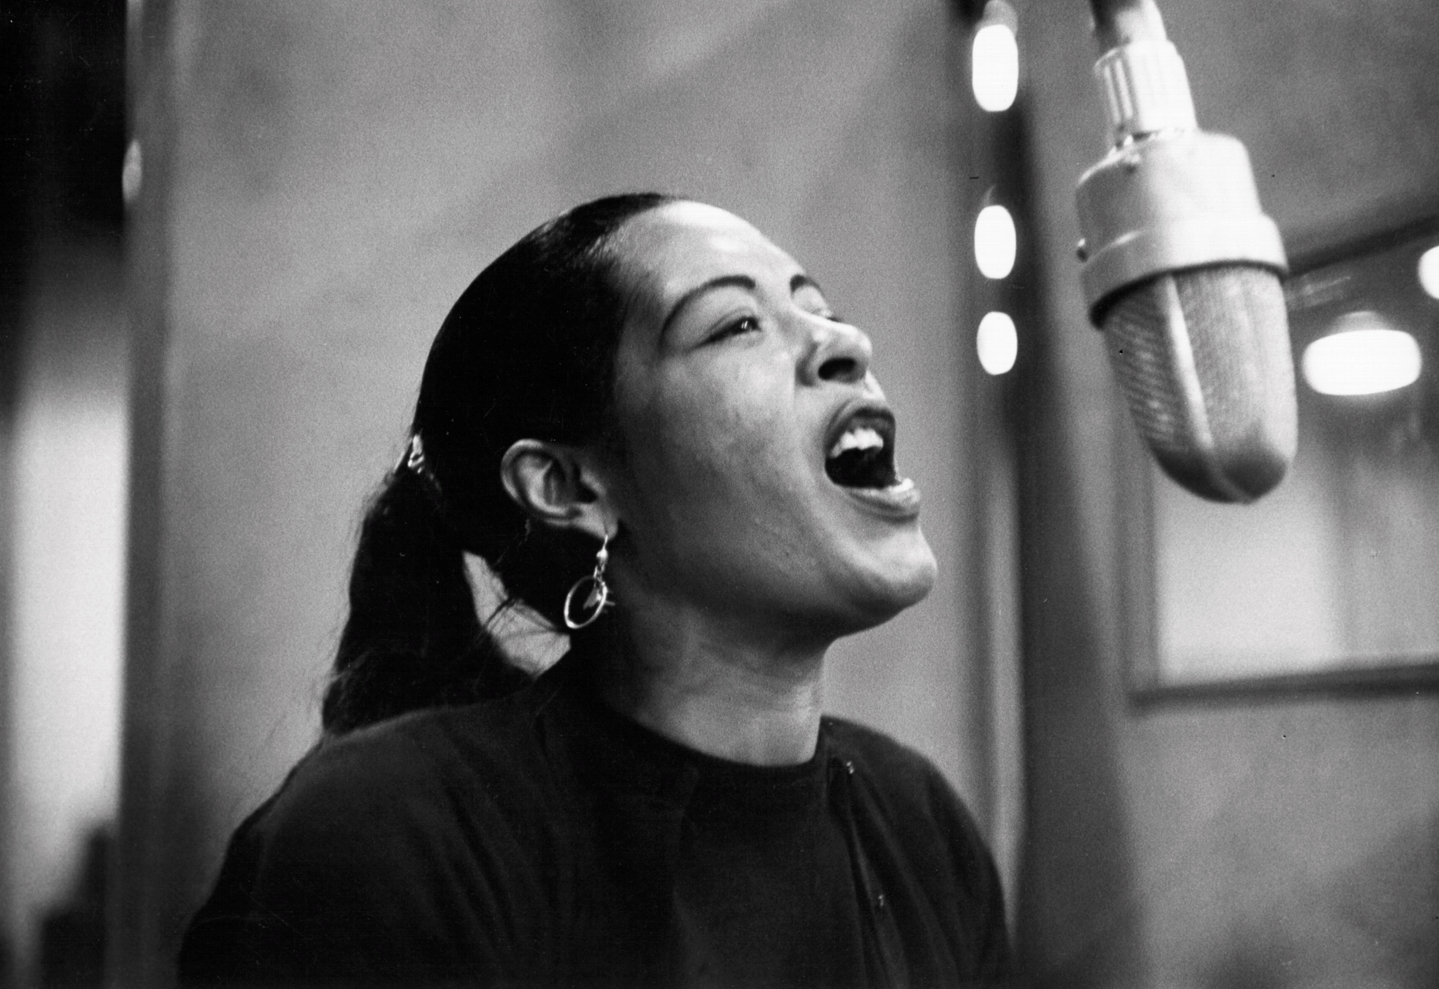 http://lounge.obviousmag.org/isso_compensa/2015/04/05/Billie_Holiday_03.jpg